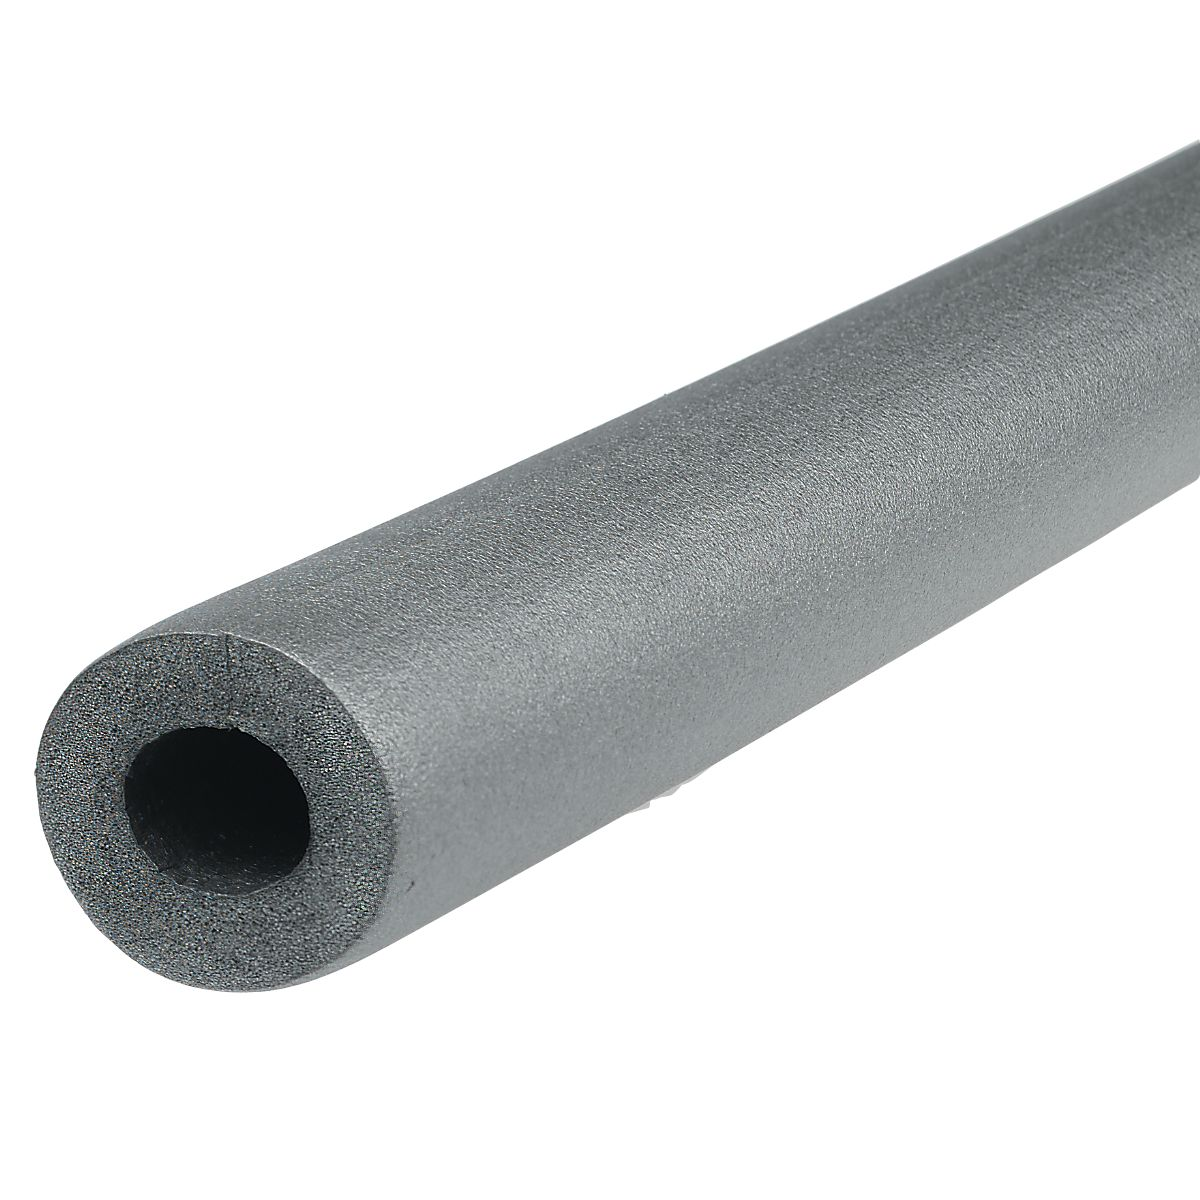 climaflex pipe insulation l 1m dia 22mm t 13mm. Black Bedroom Furniture Sets. Home Design Ideas